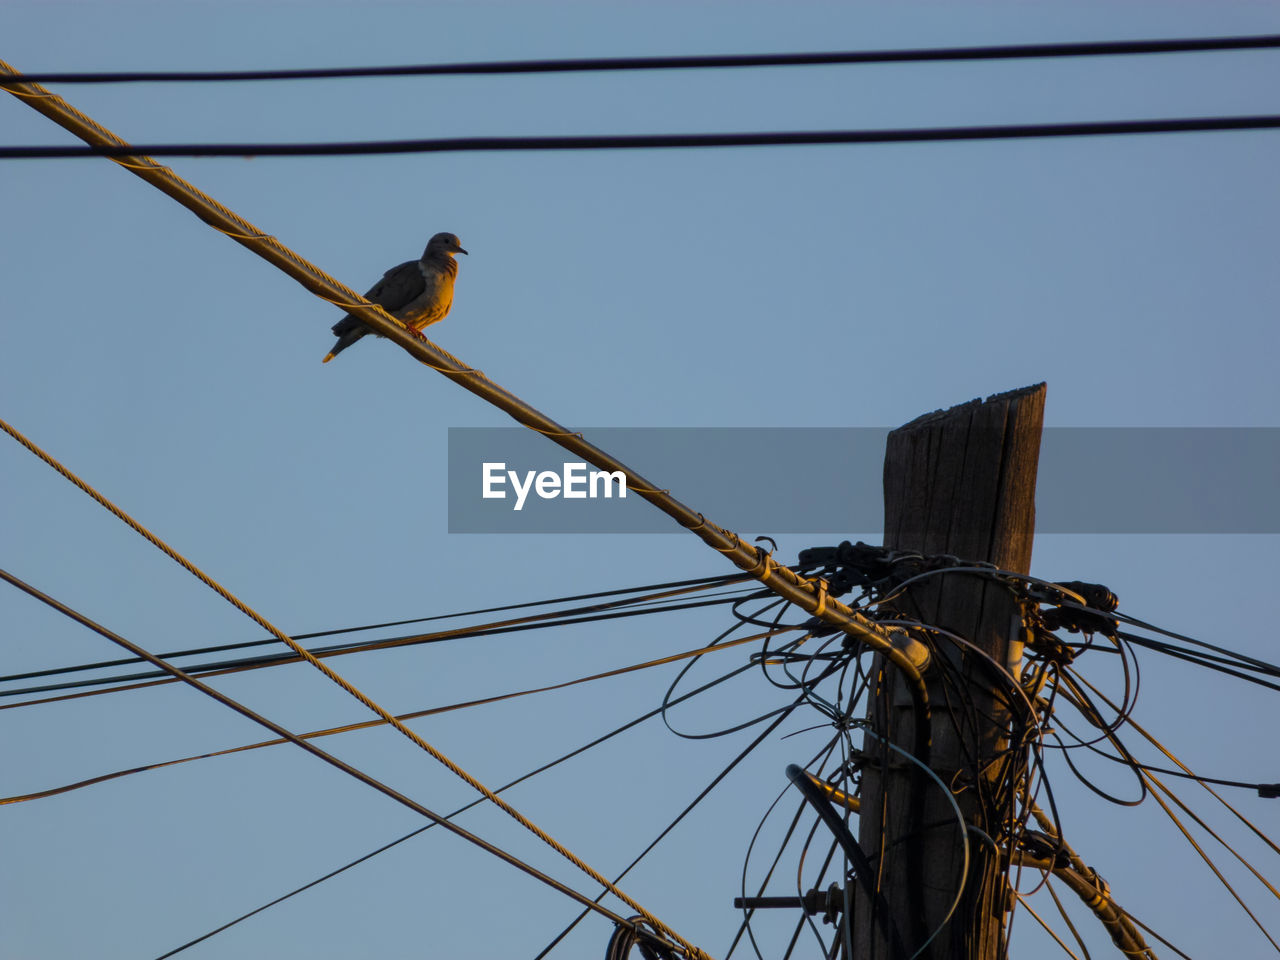 cable, low angle view, vertebrate, power line, bird, electricity, sky, animal wildlife, animal themes, animal, connection, animals in the wild, power supply, technology, clear sky, perching, no people, electricity pylon, nature, fuel and power generation, telephone line, outdoors, wooden post